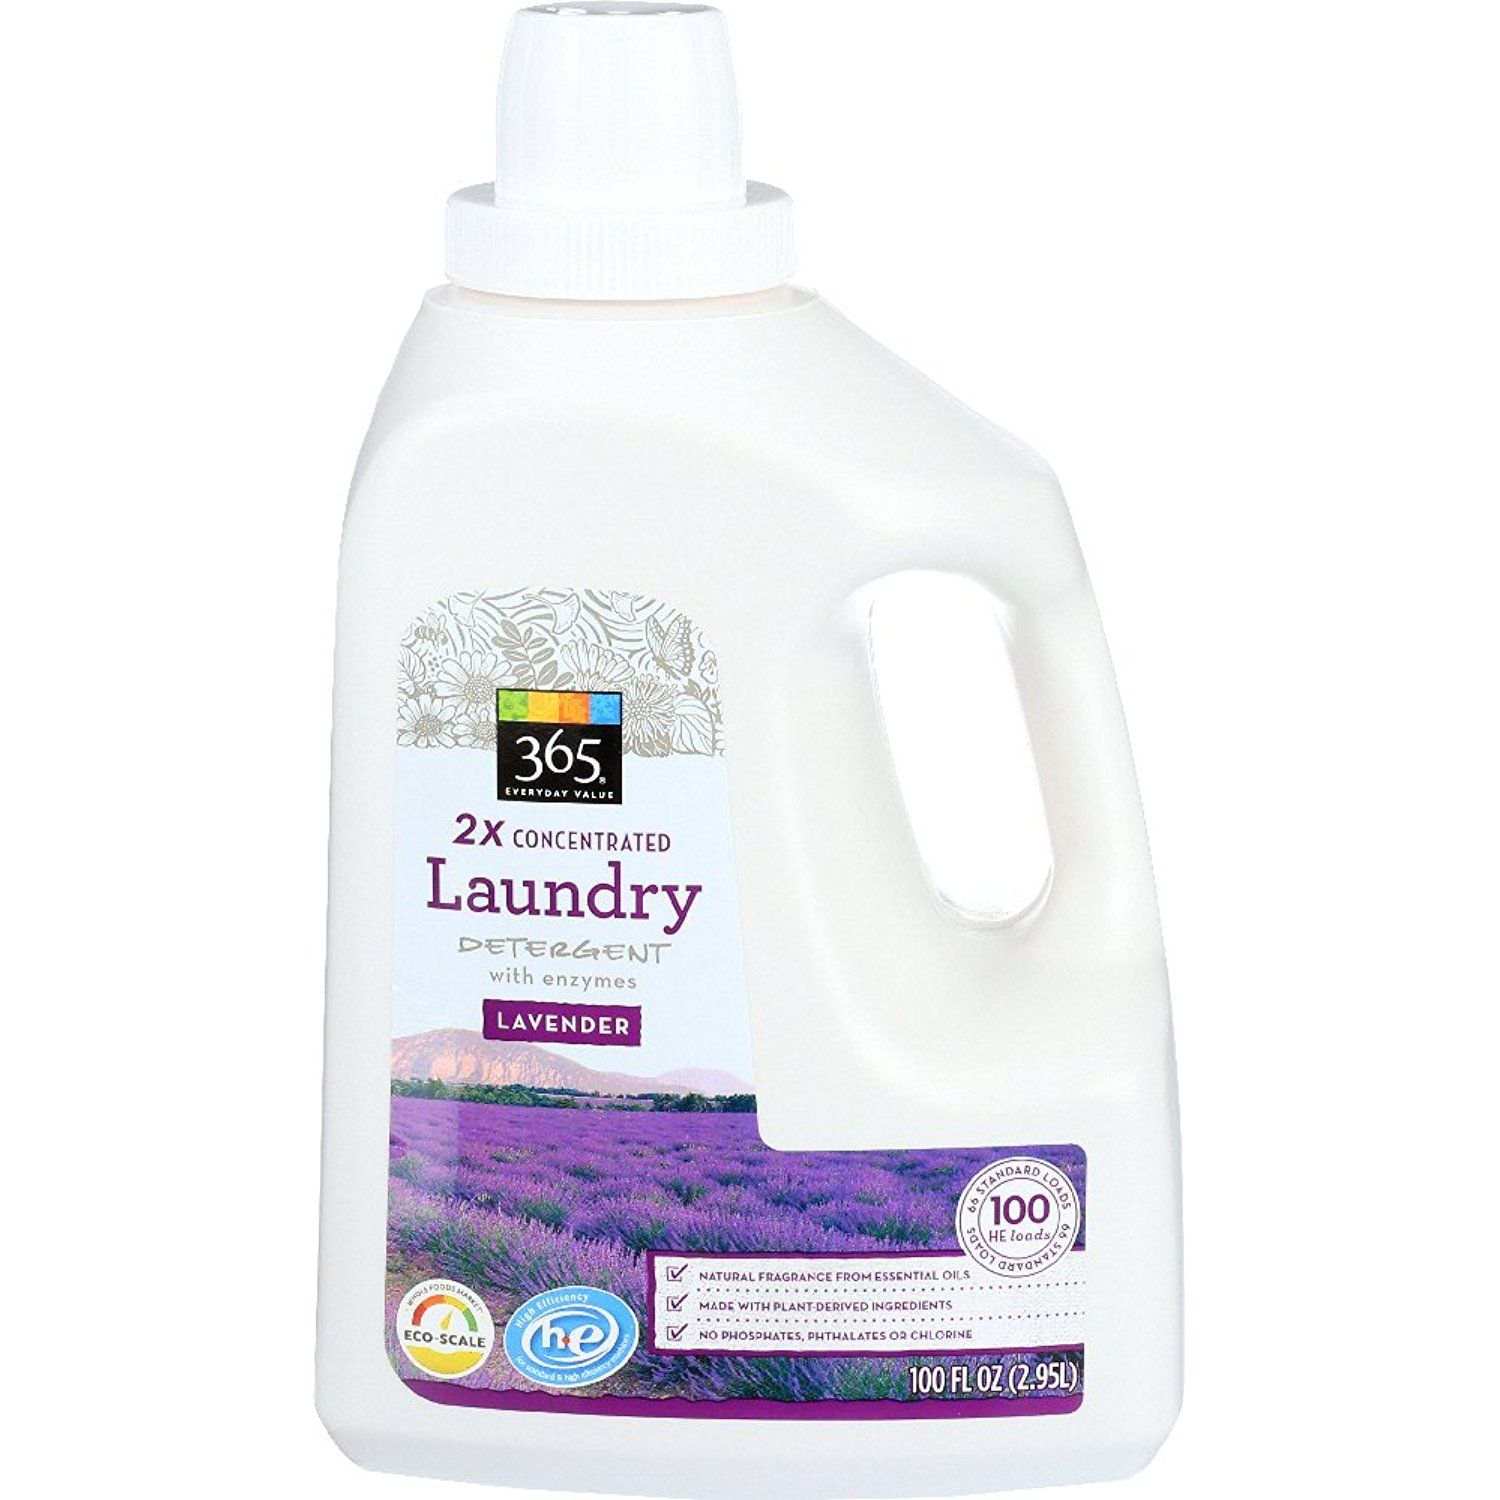 365 Everyday Value 2x Concentrated Laundry Detergent Lavender